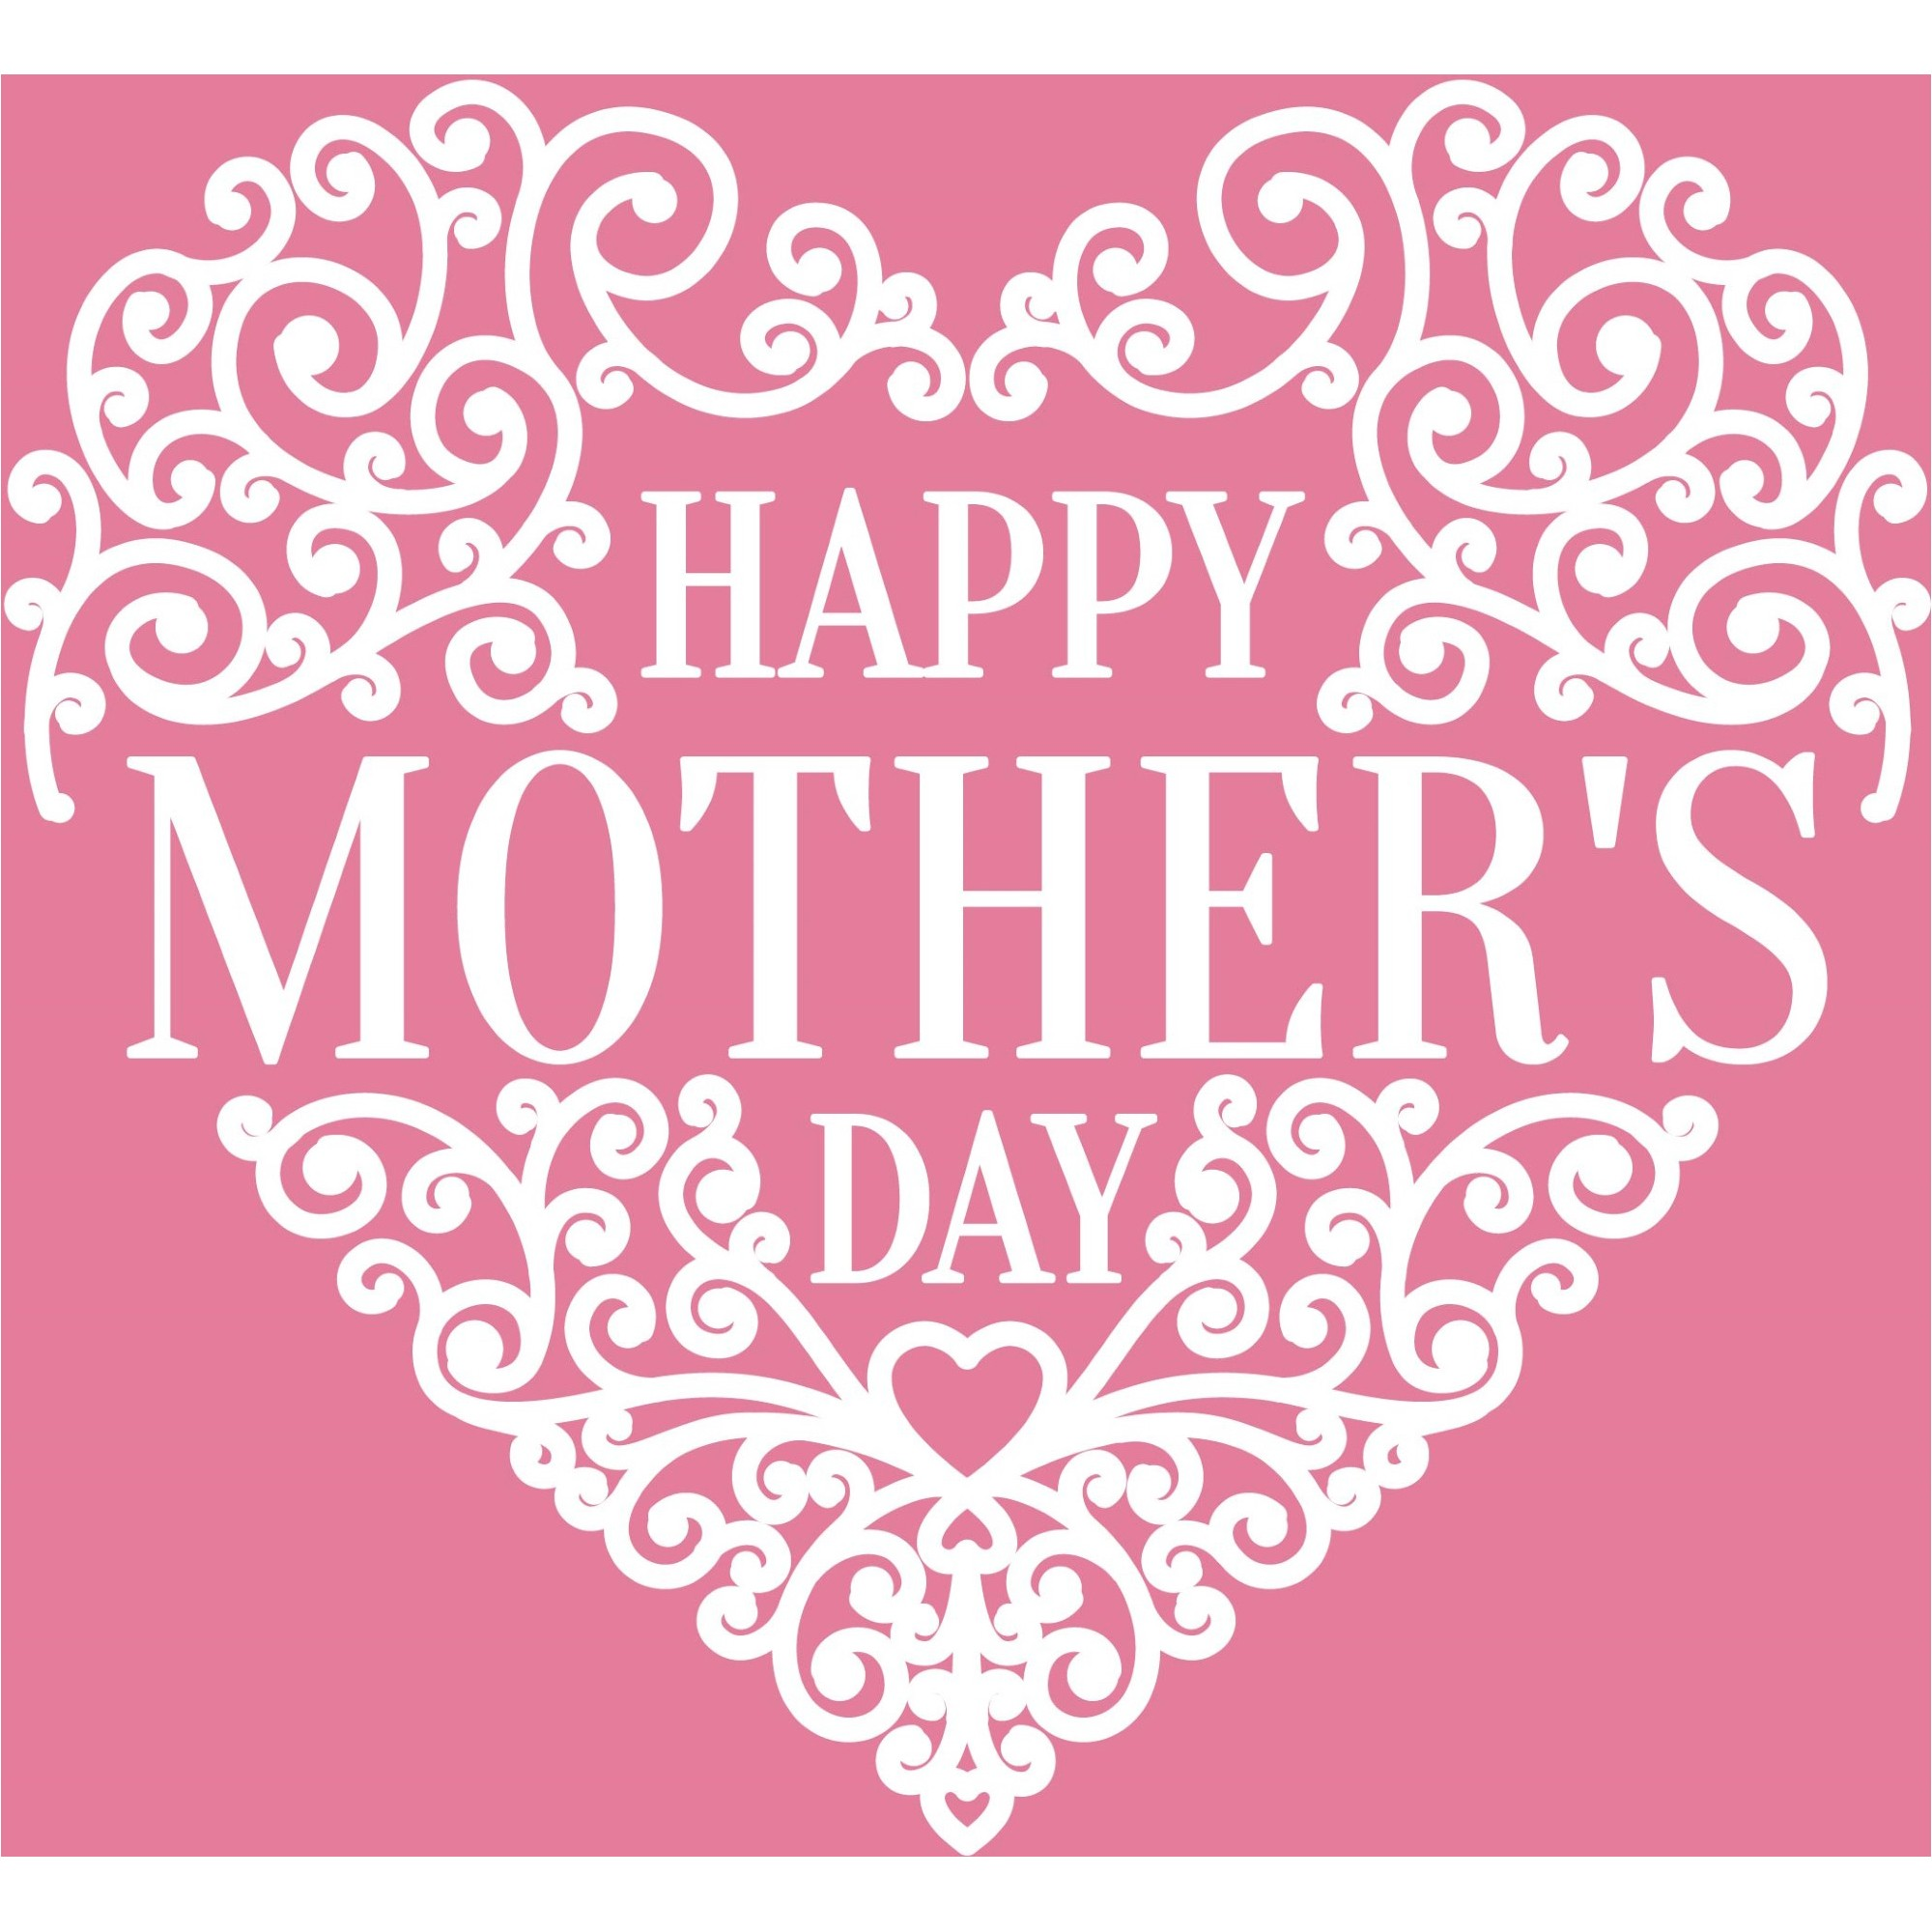 Mother's Day background ·① Download free wallpapers for ...